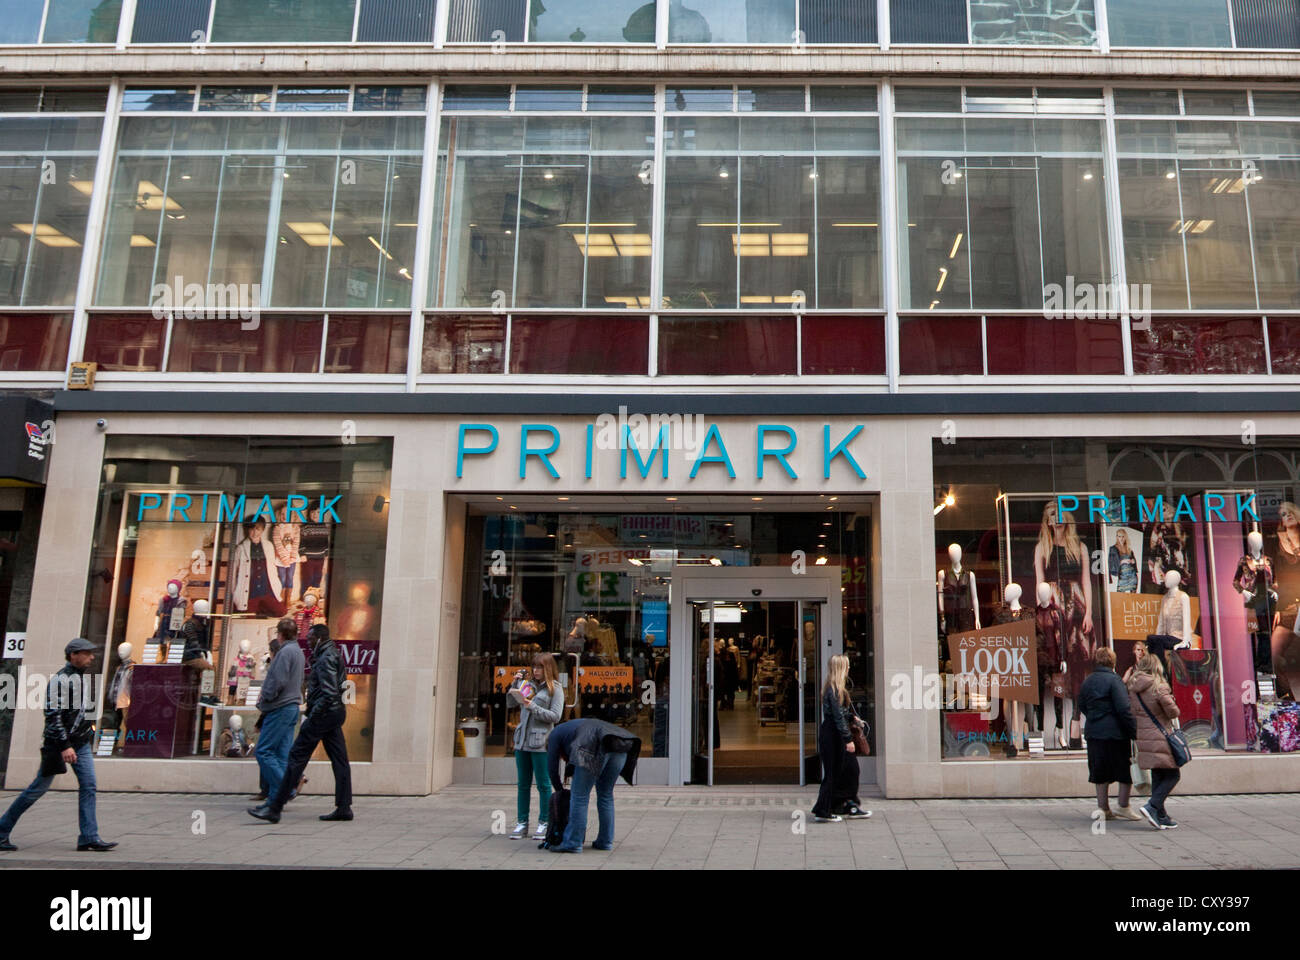 New Primark flagship store in Oxford Street, London - Stock Image